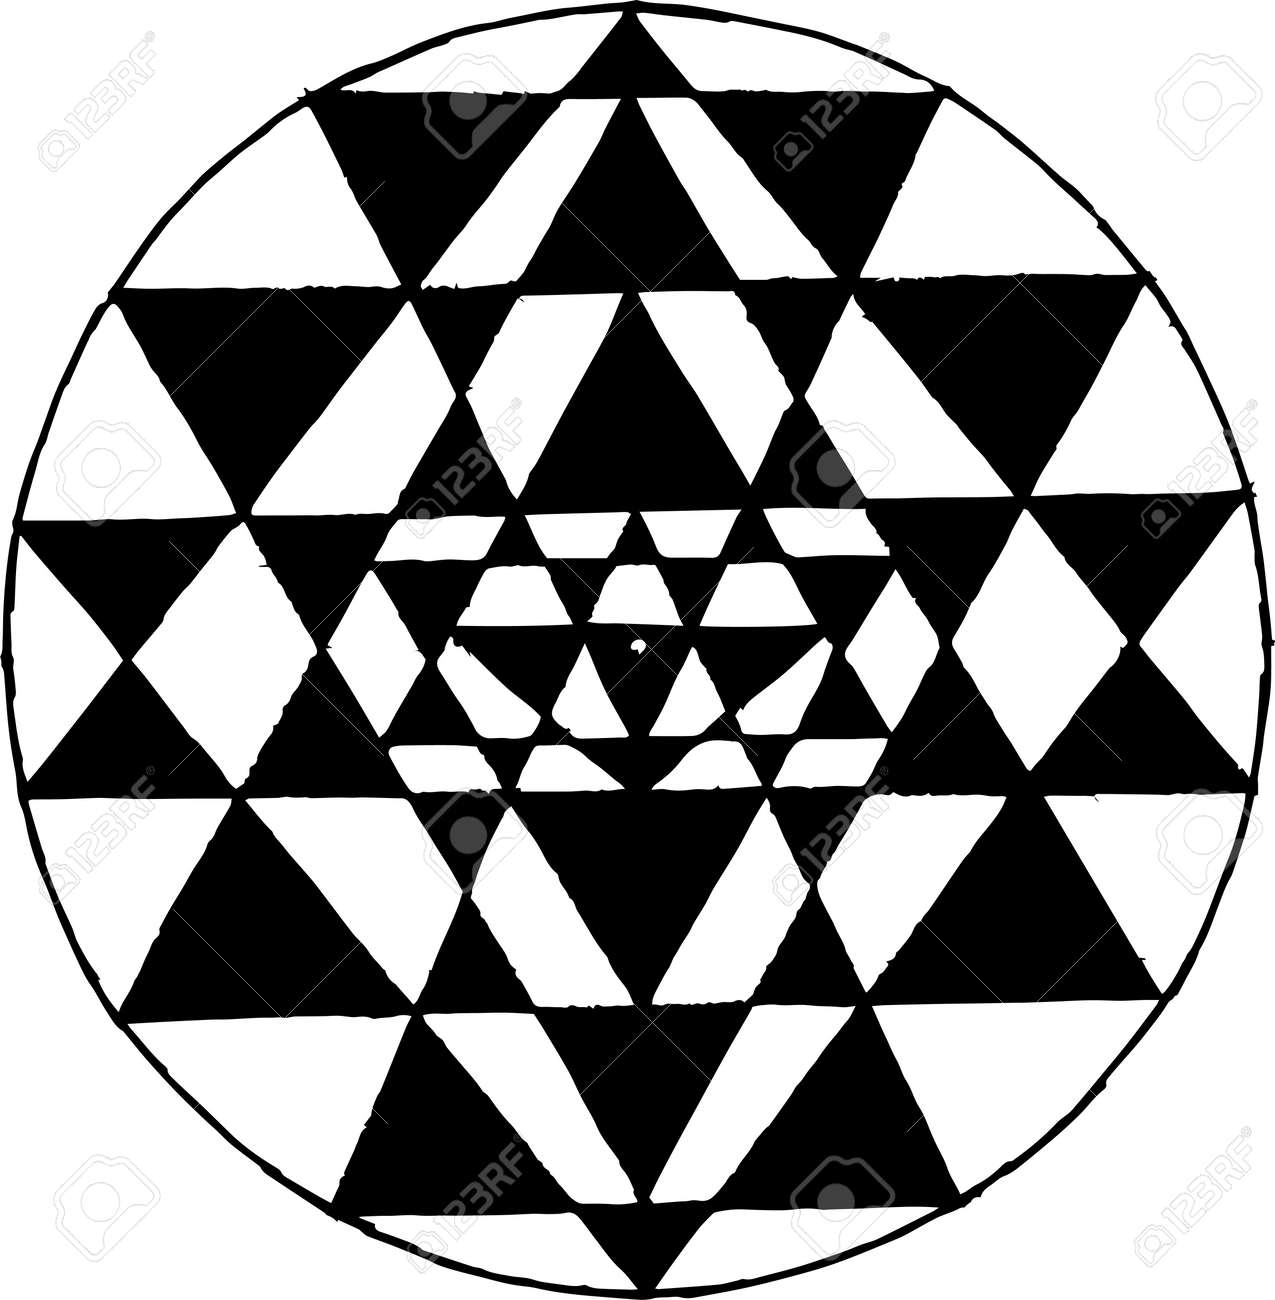 Black white picture of Shri Yantra  Triangles and concentration